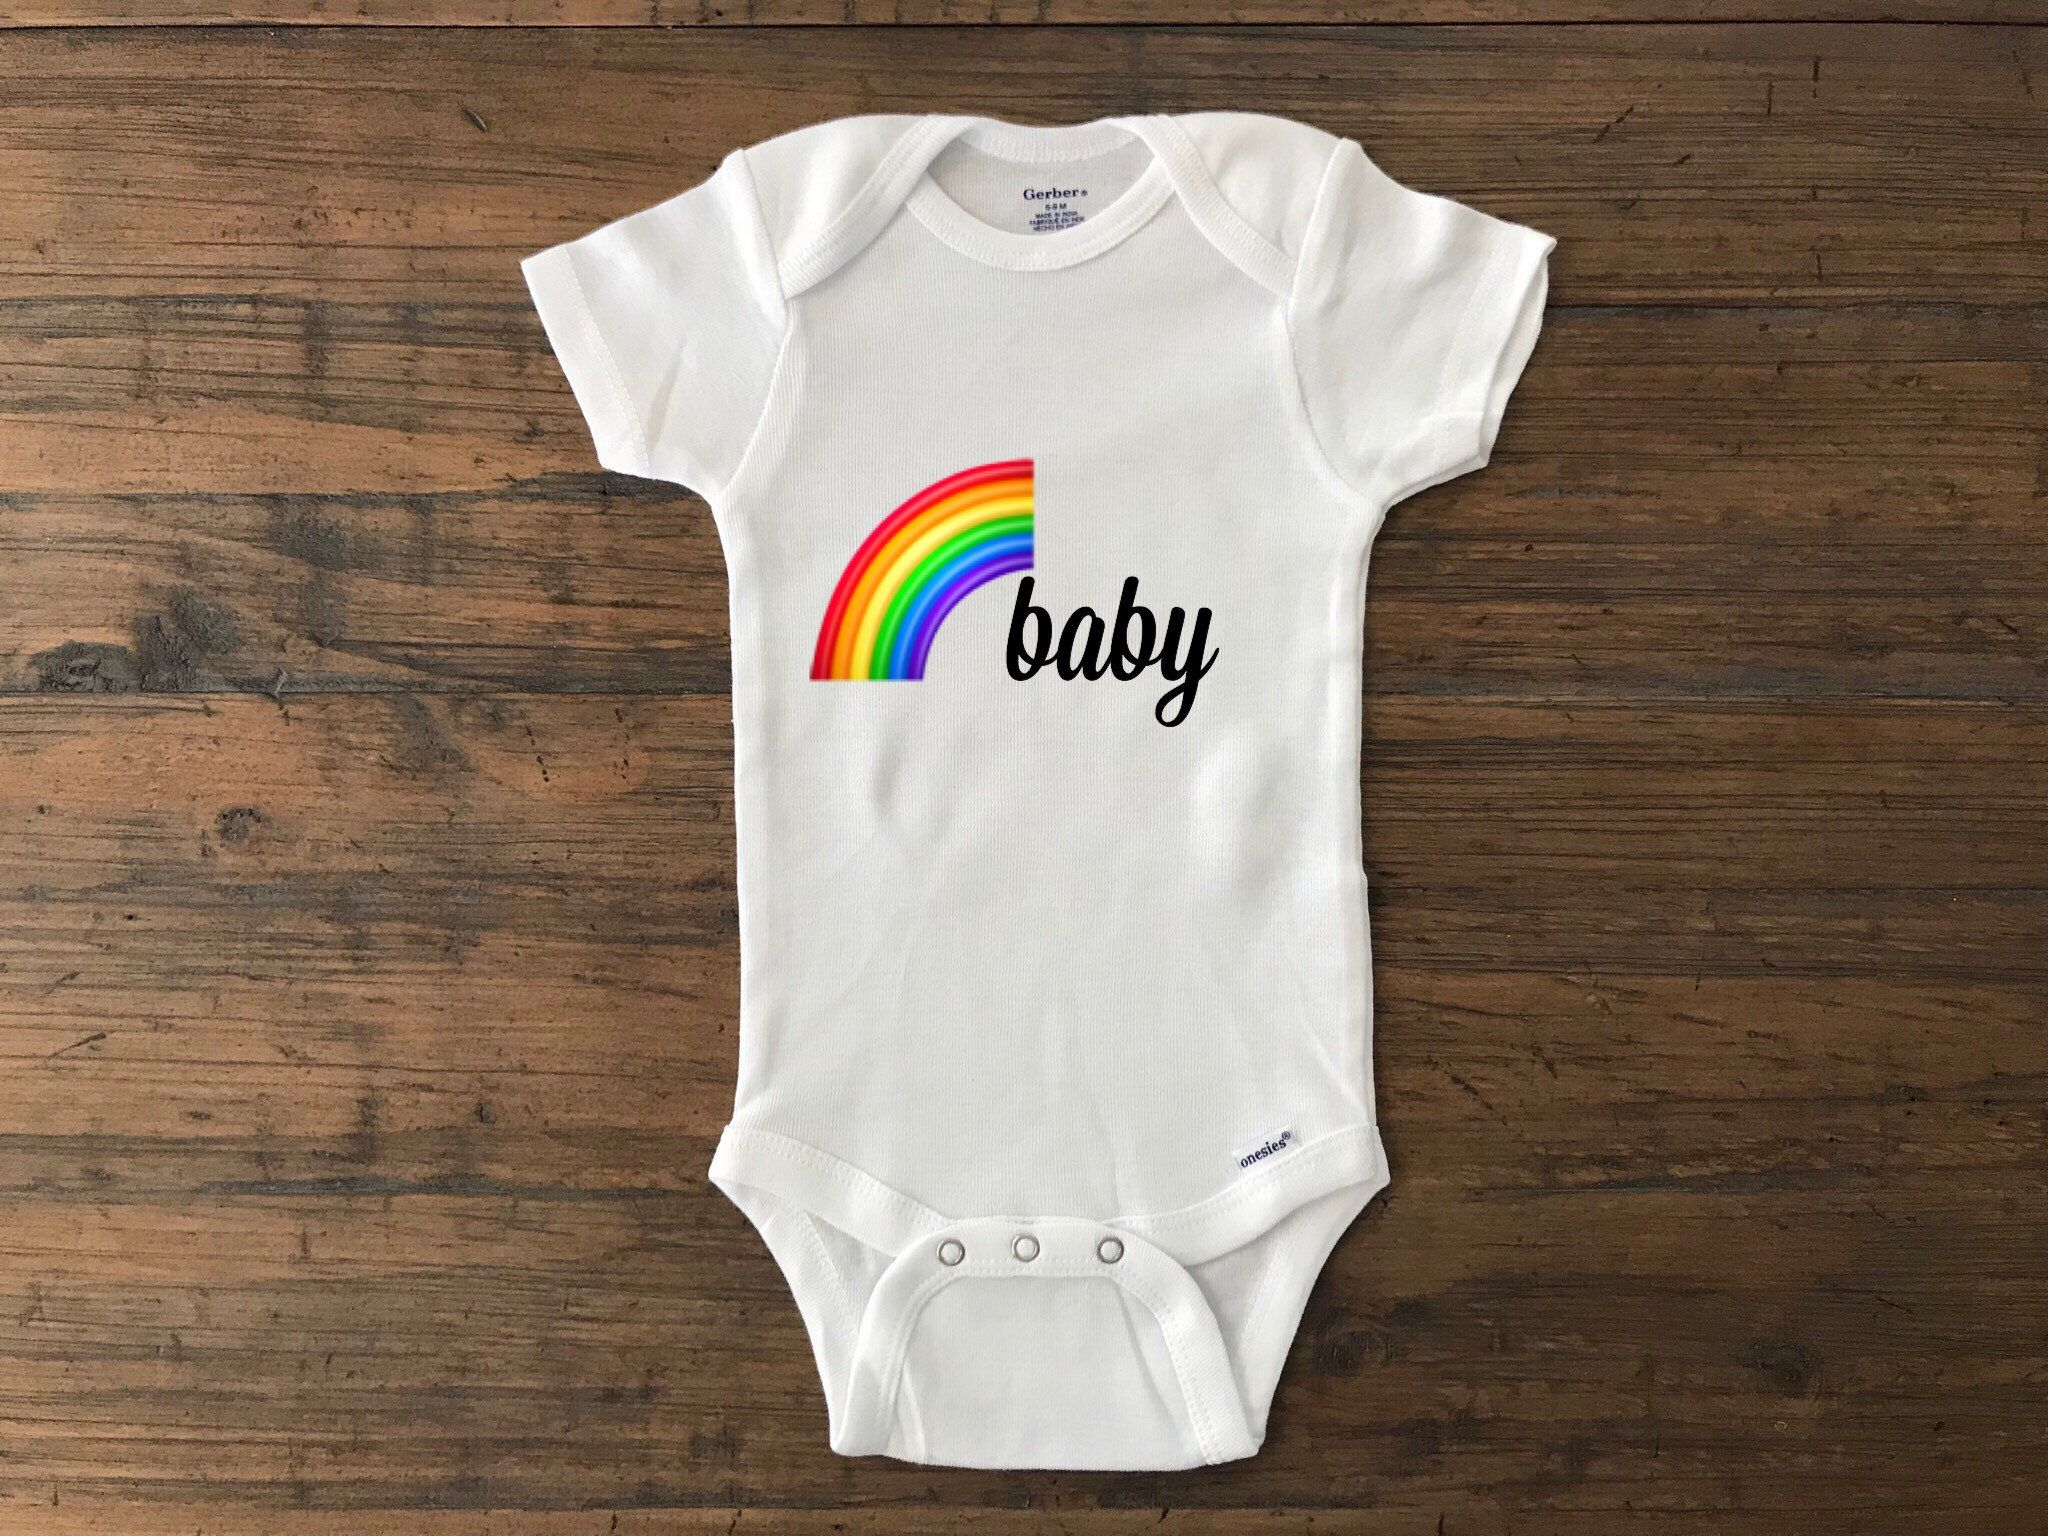 3675004a7 Excited to share the latest addition to my #etsy shop: Rainbow baby • custom  baby onesie • rainbow baby onesie • miracle baby • pregnancy announcement  ...